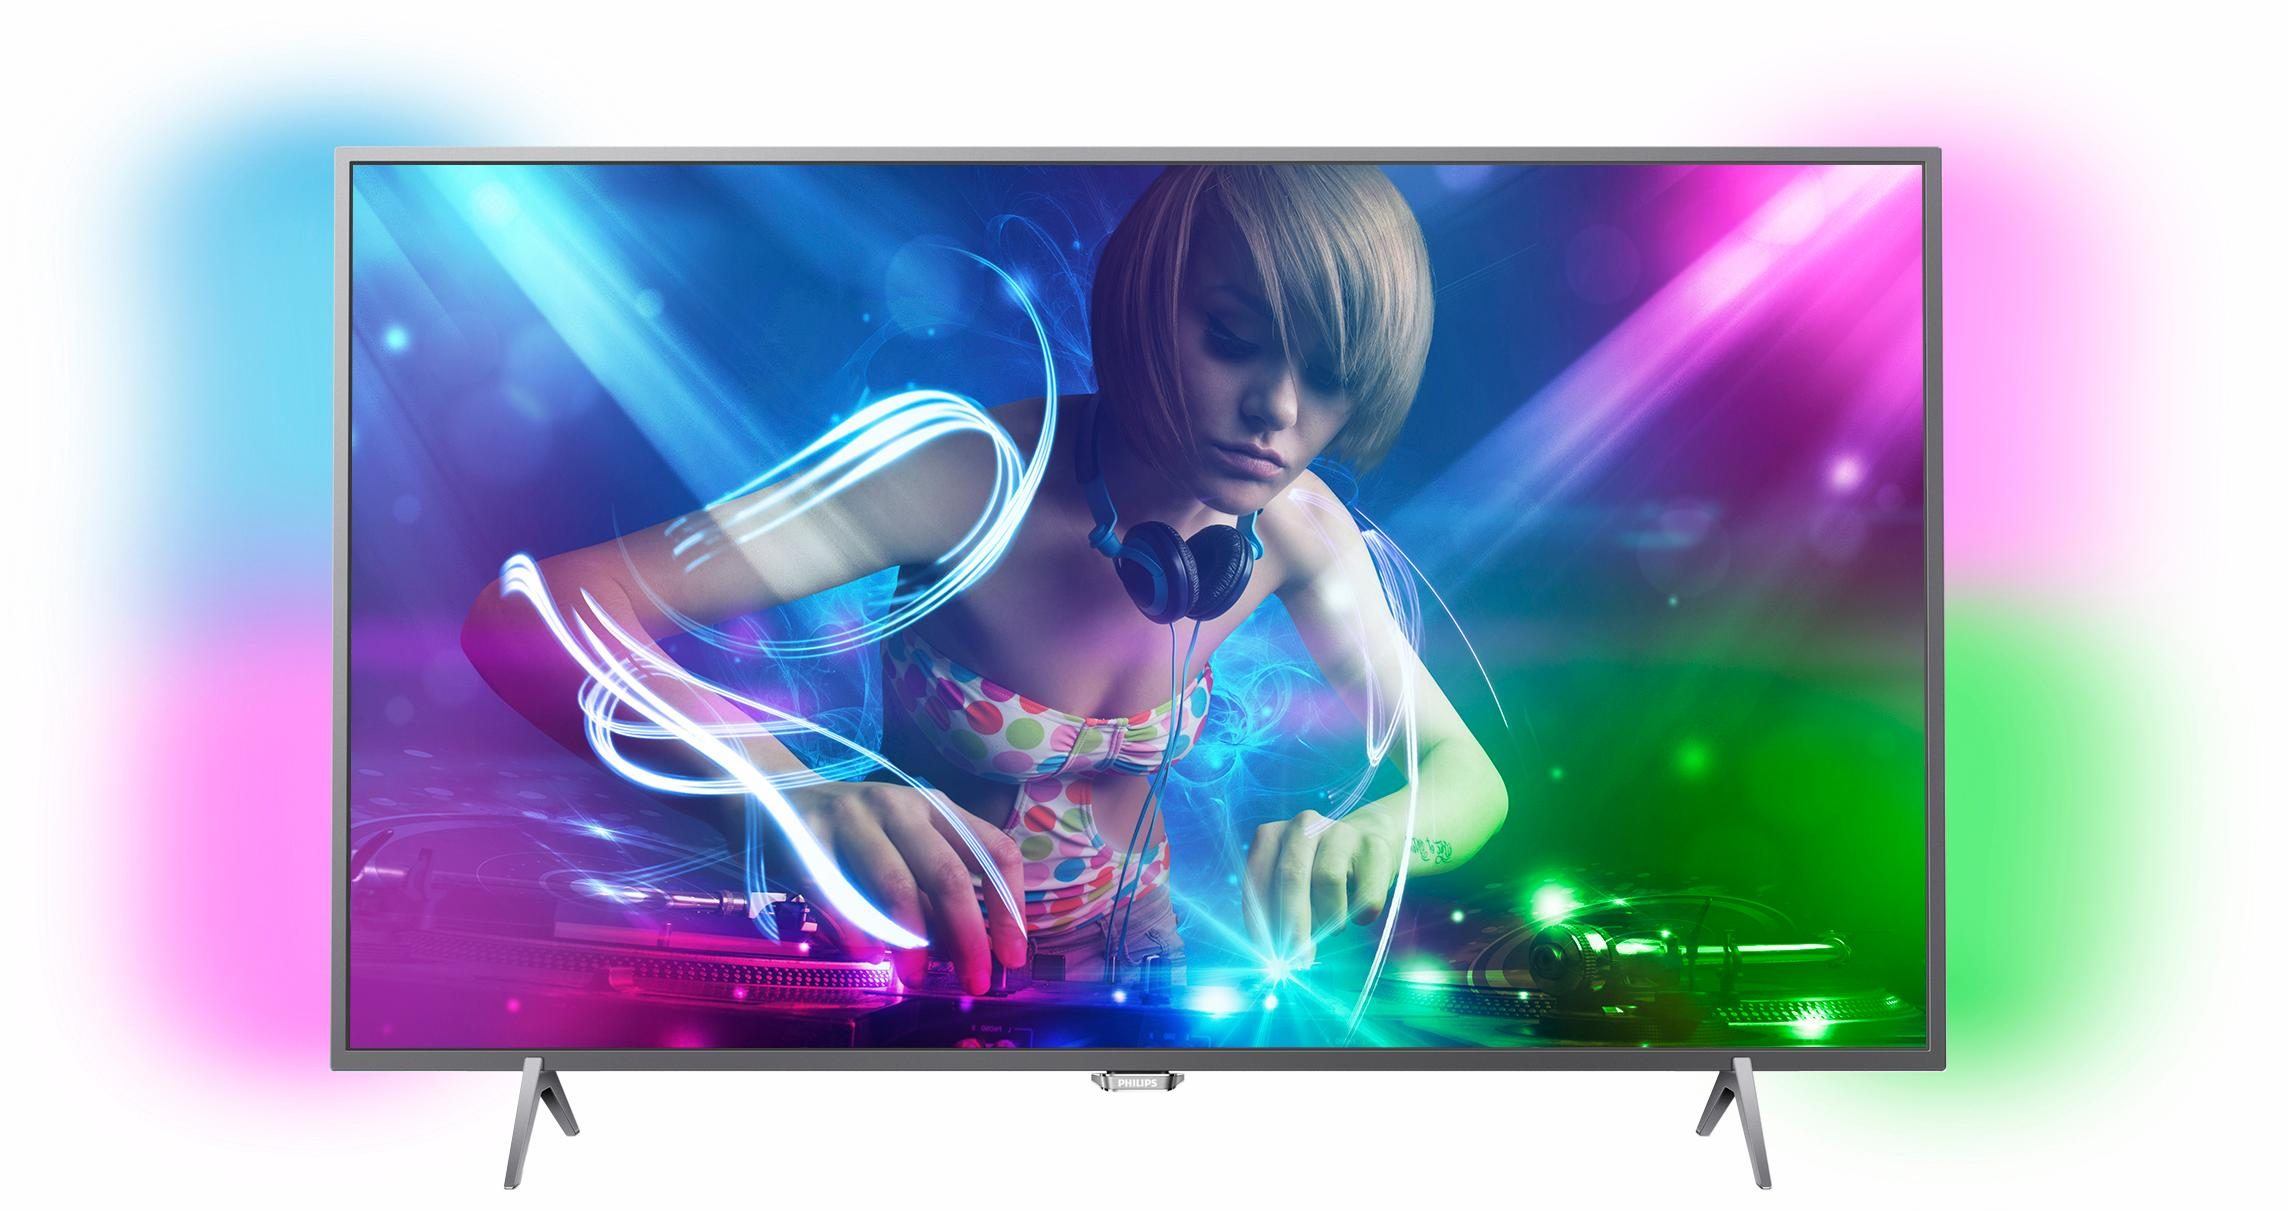 Philips 55PUS6401/12 LED TV (139 cm (55 Zoll), Ultra HD, Ambilight) inkl. 36 Monate Garantie